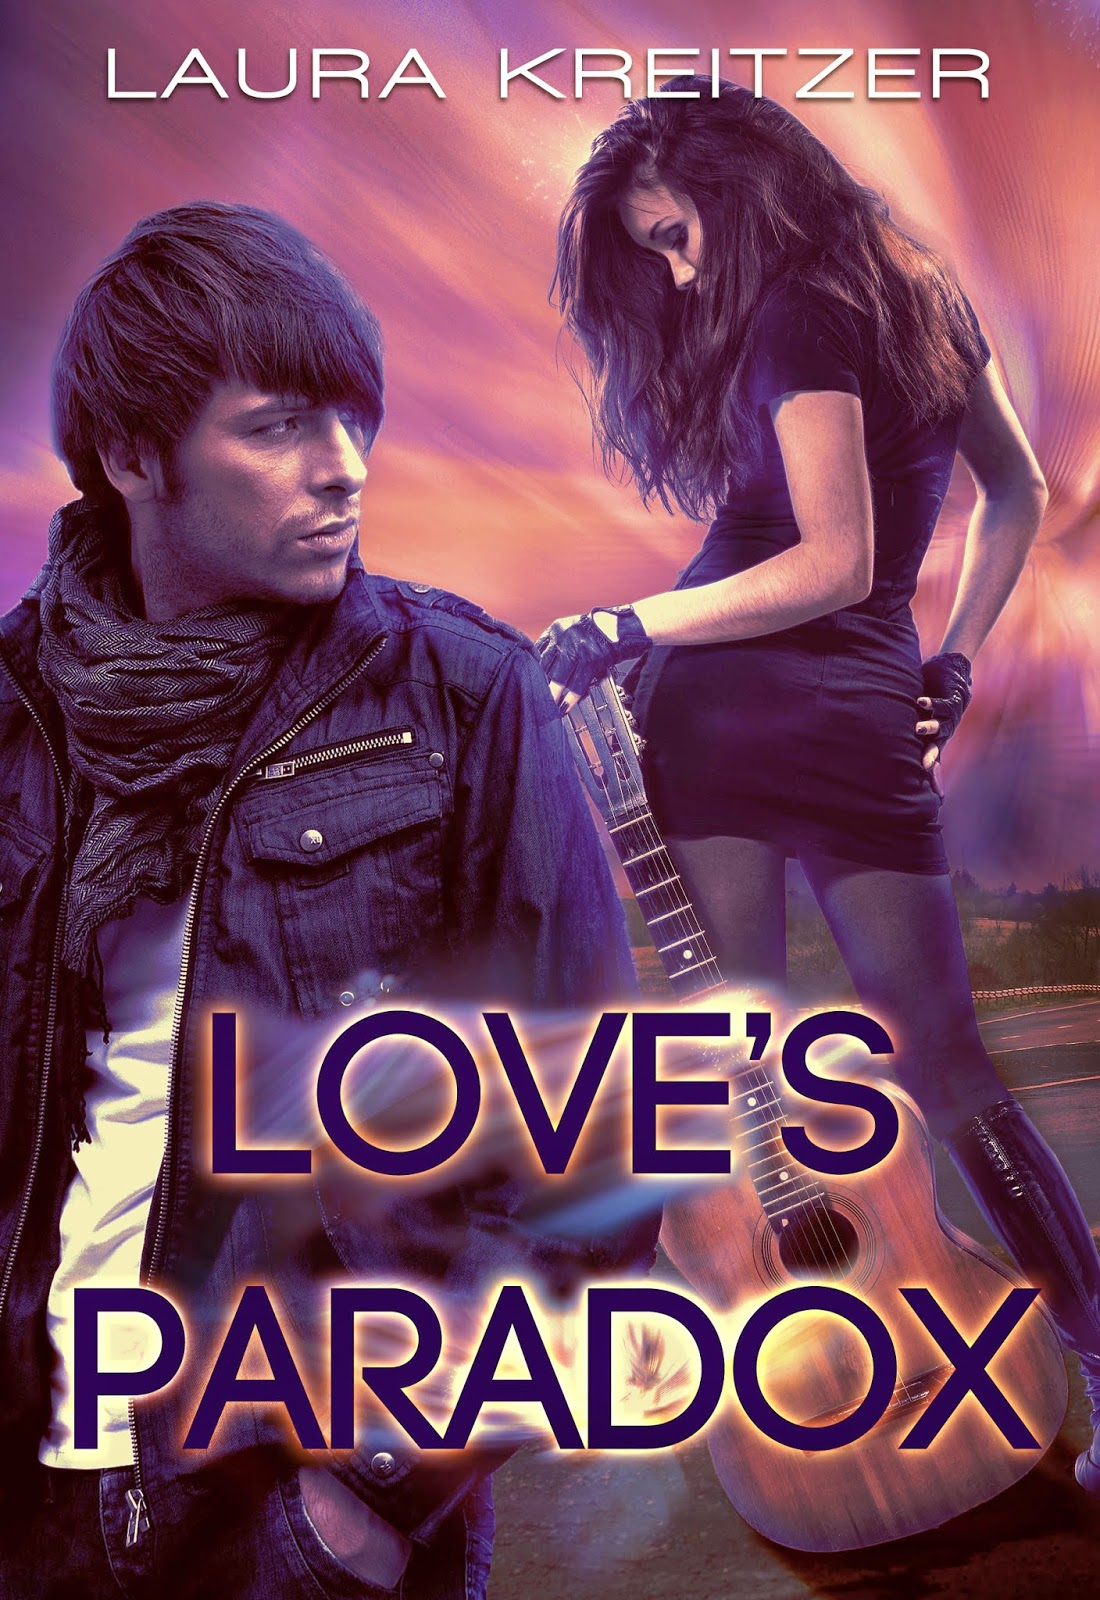 Love's Paradox by Laura Kreitzer – Waiting on Wednesday